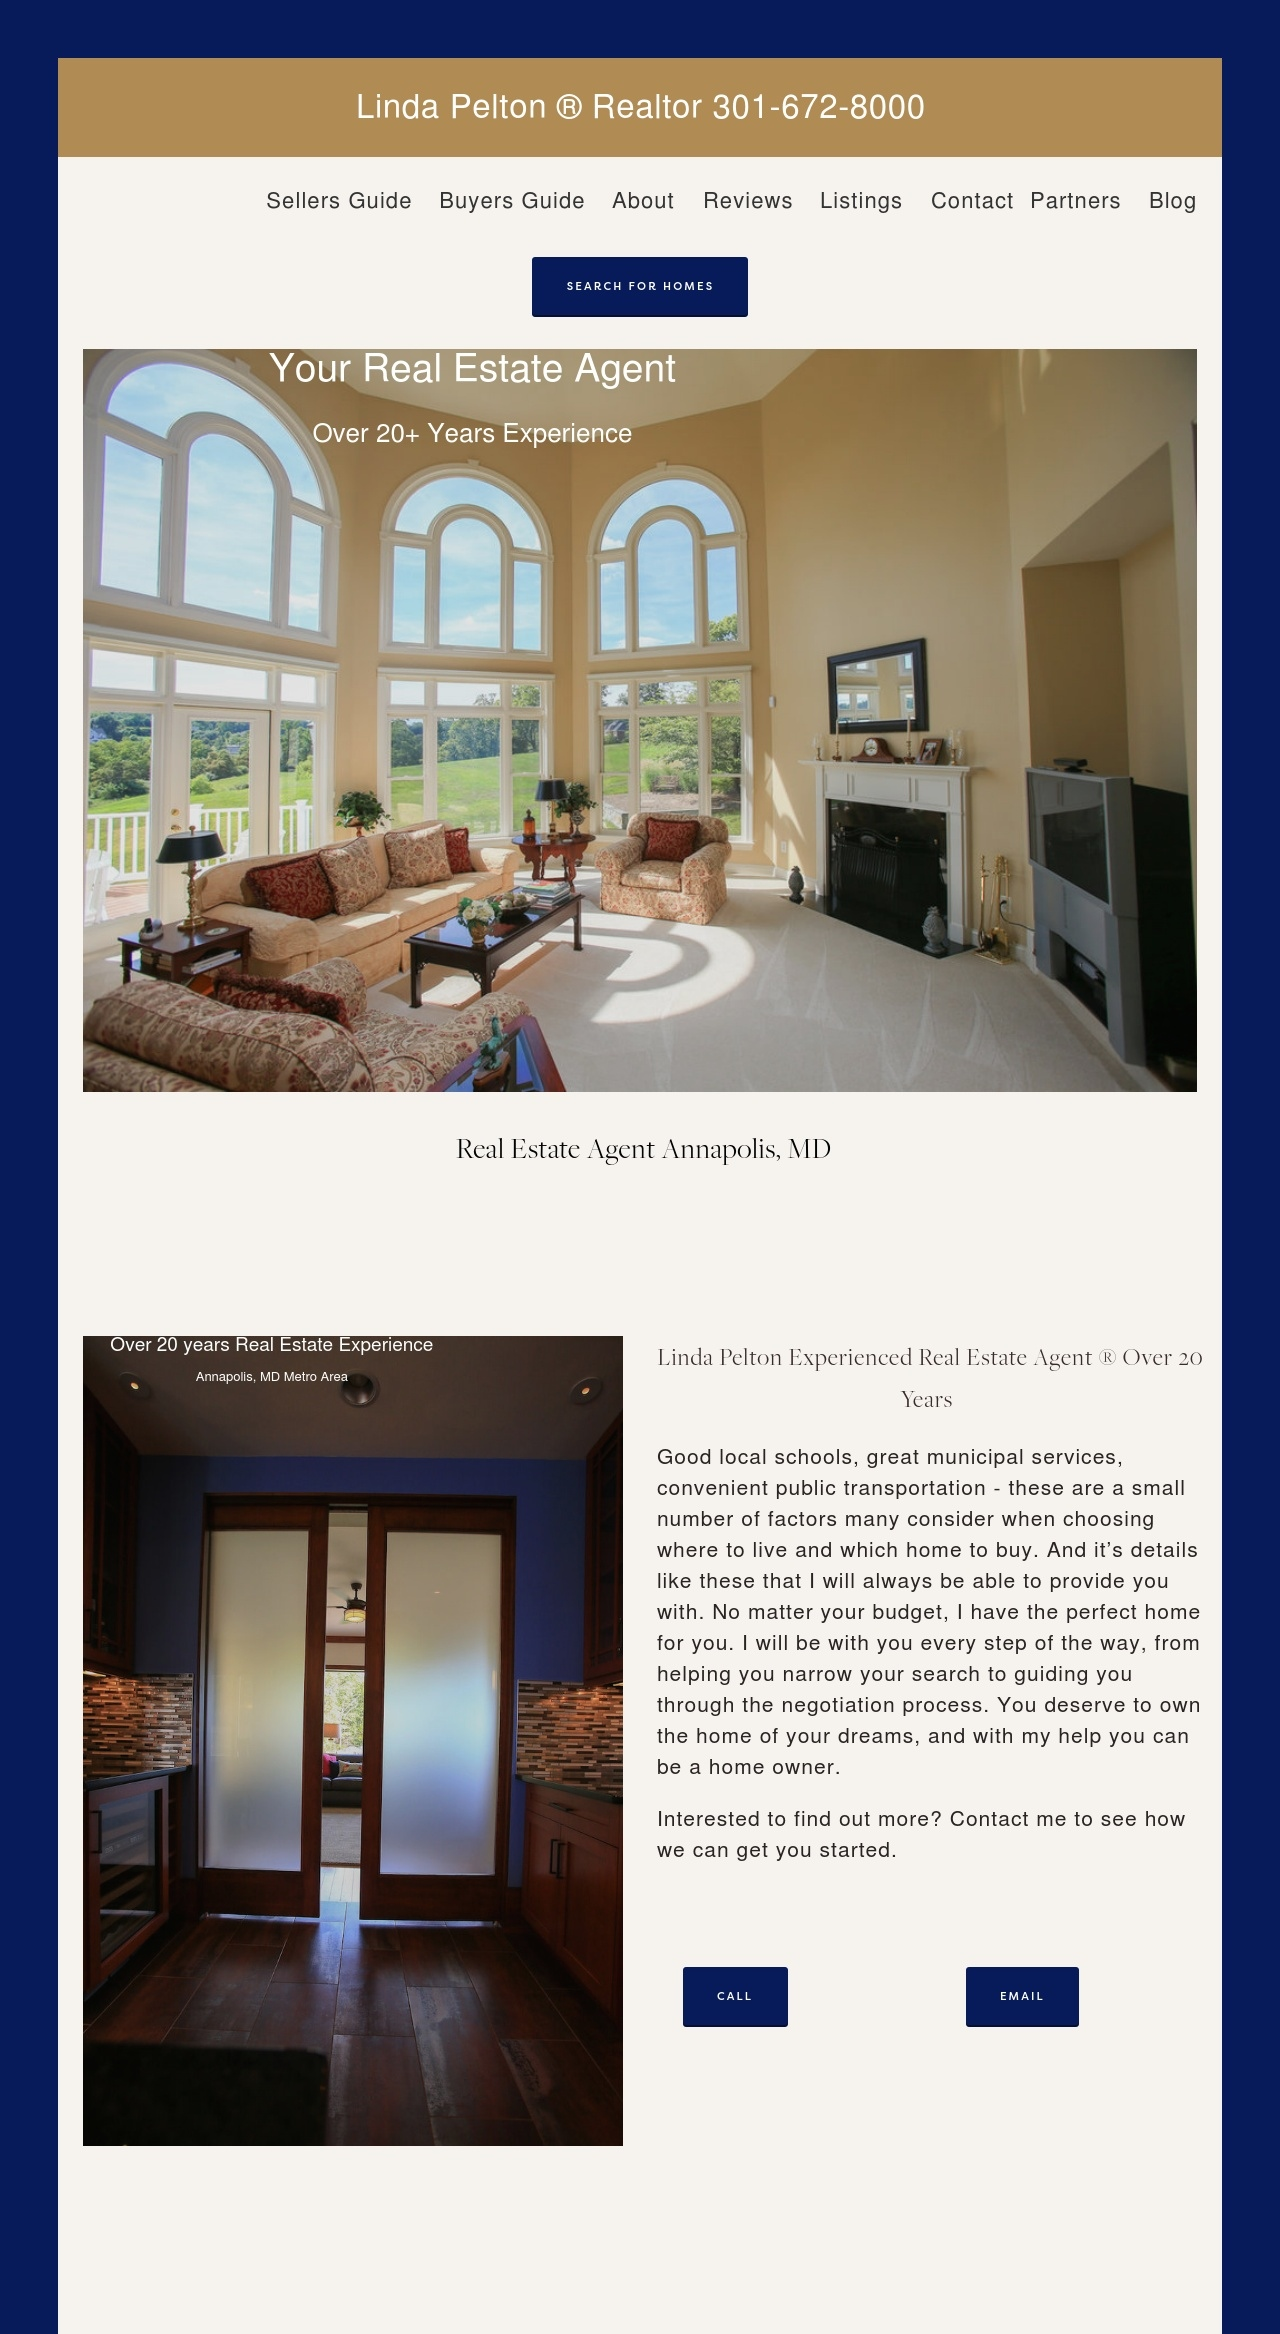 Linda Pelton Realtor - This website segments sellers and buyers by offering educational information for first time buyers and sellers through the buyer's and seller's guides. Linda is an established real estate expert as she also owned a title company. She wanted the focus to be on her as a real estate agent, as she recently became an agent. With solid photography and important contact info on each page it's functional and beautiful.